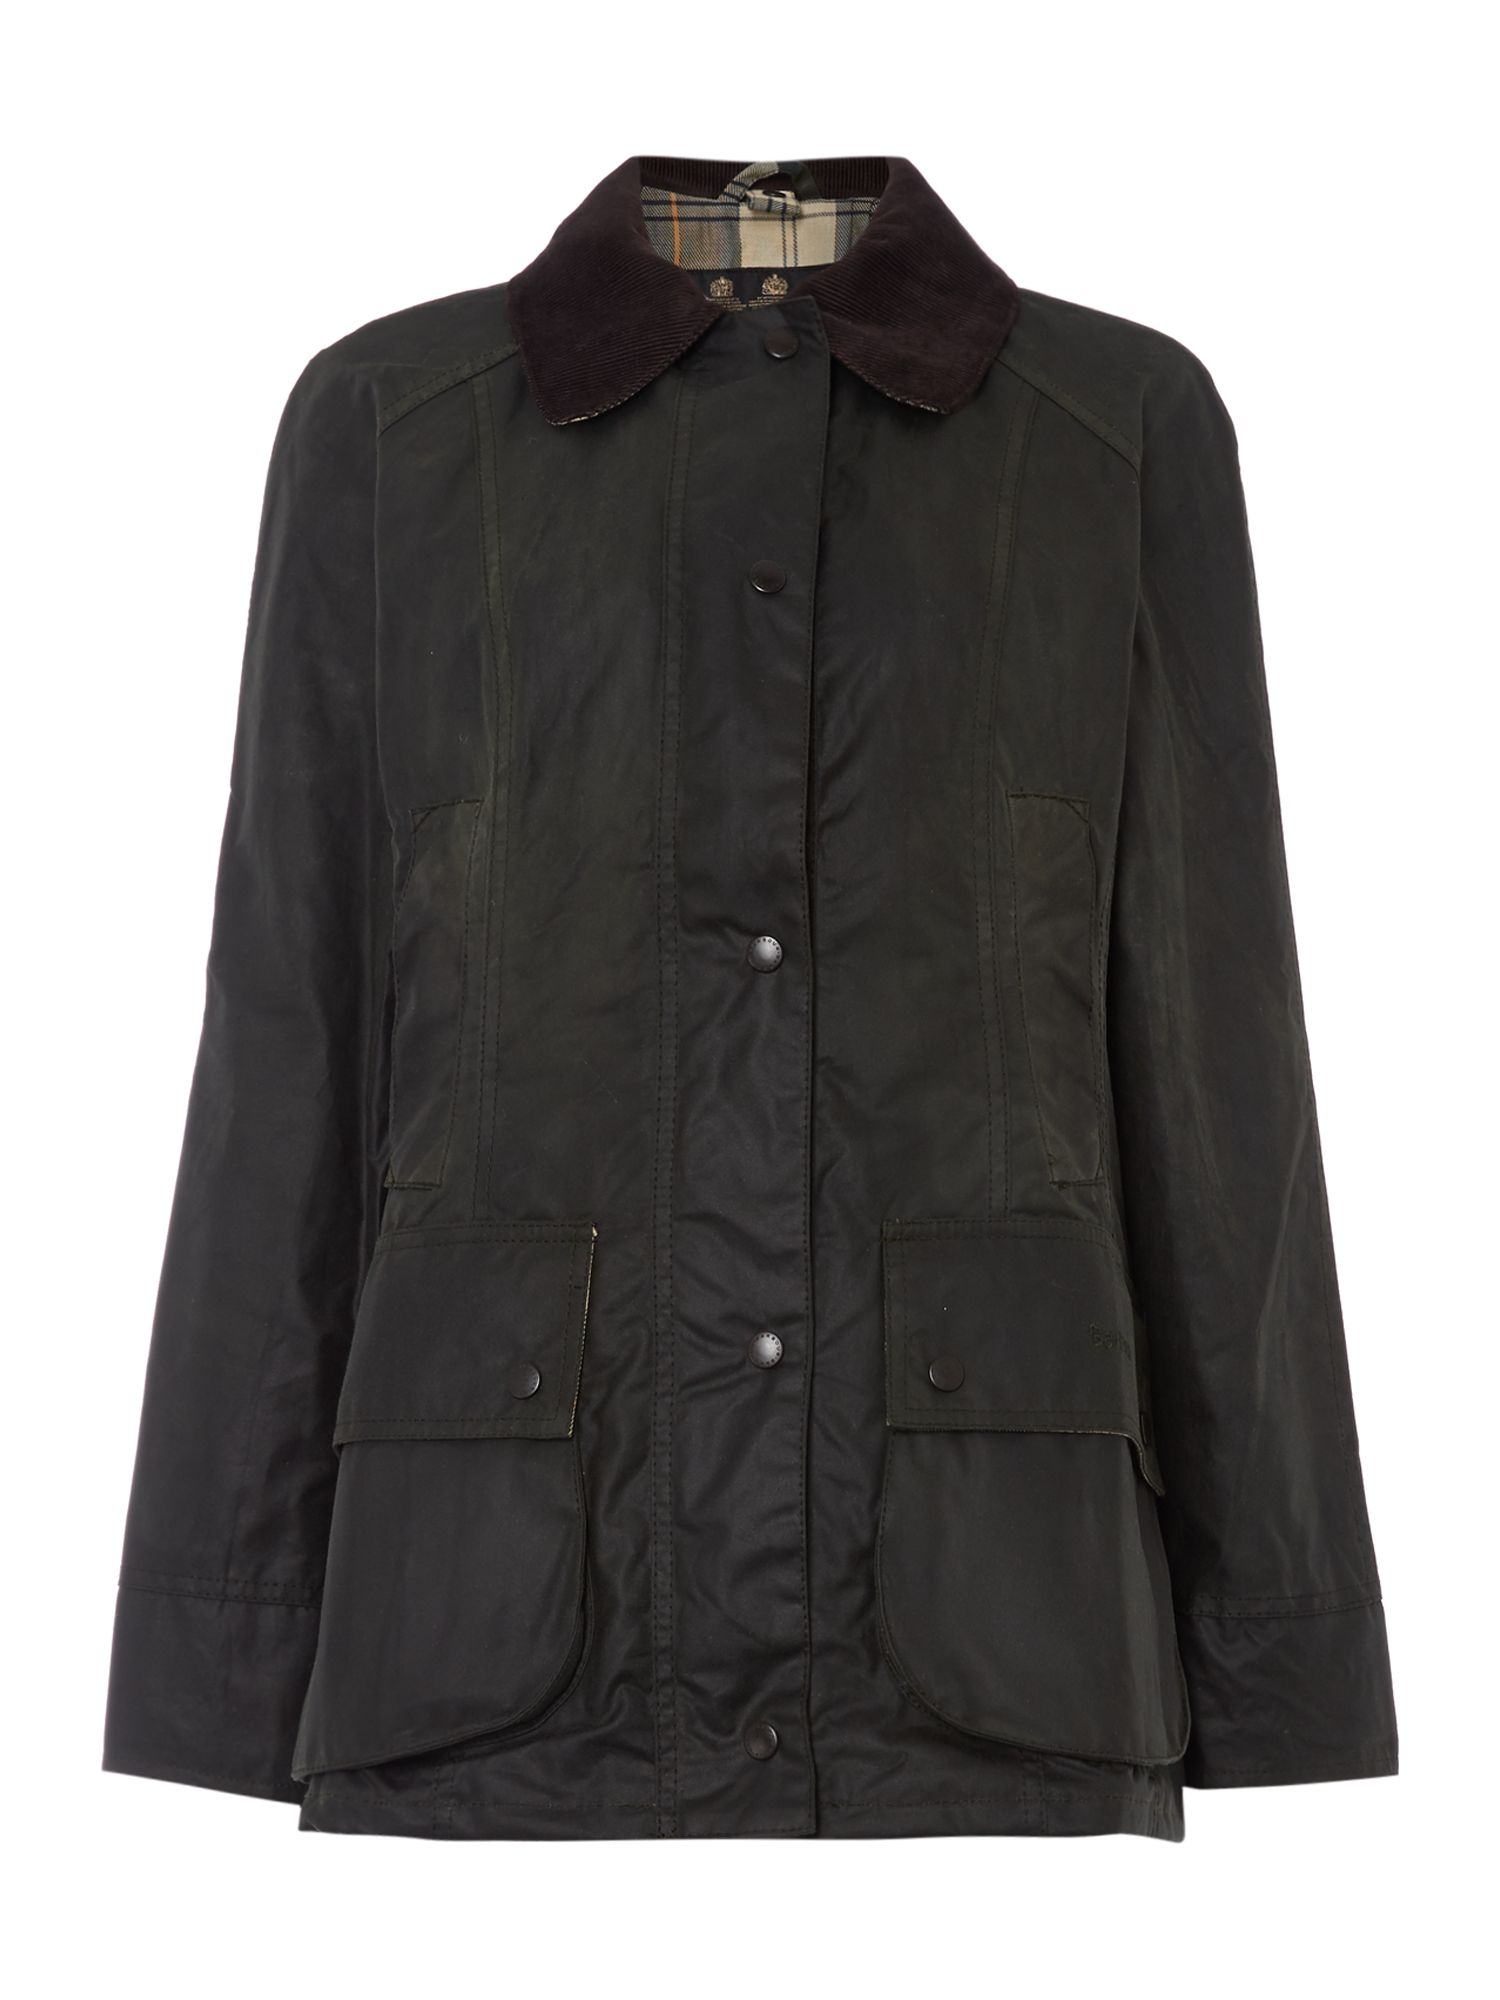 Barbour Beadnell waxed jacket, Sage